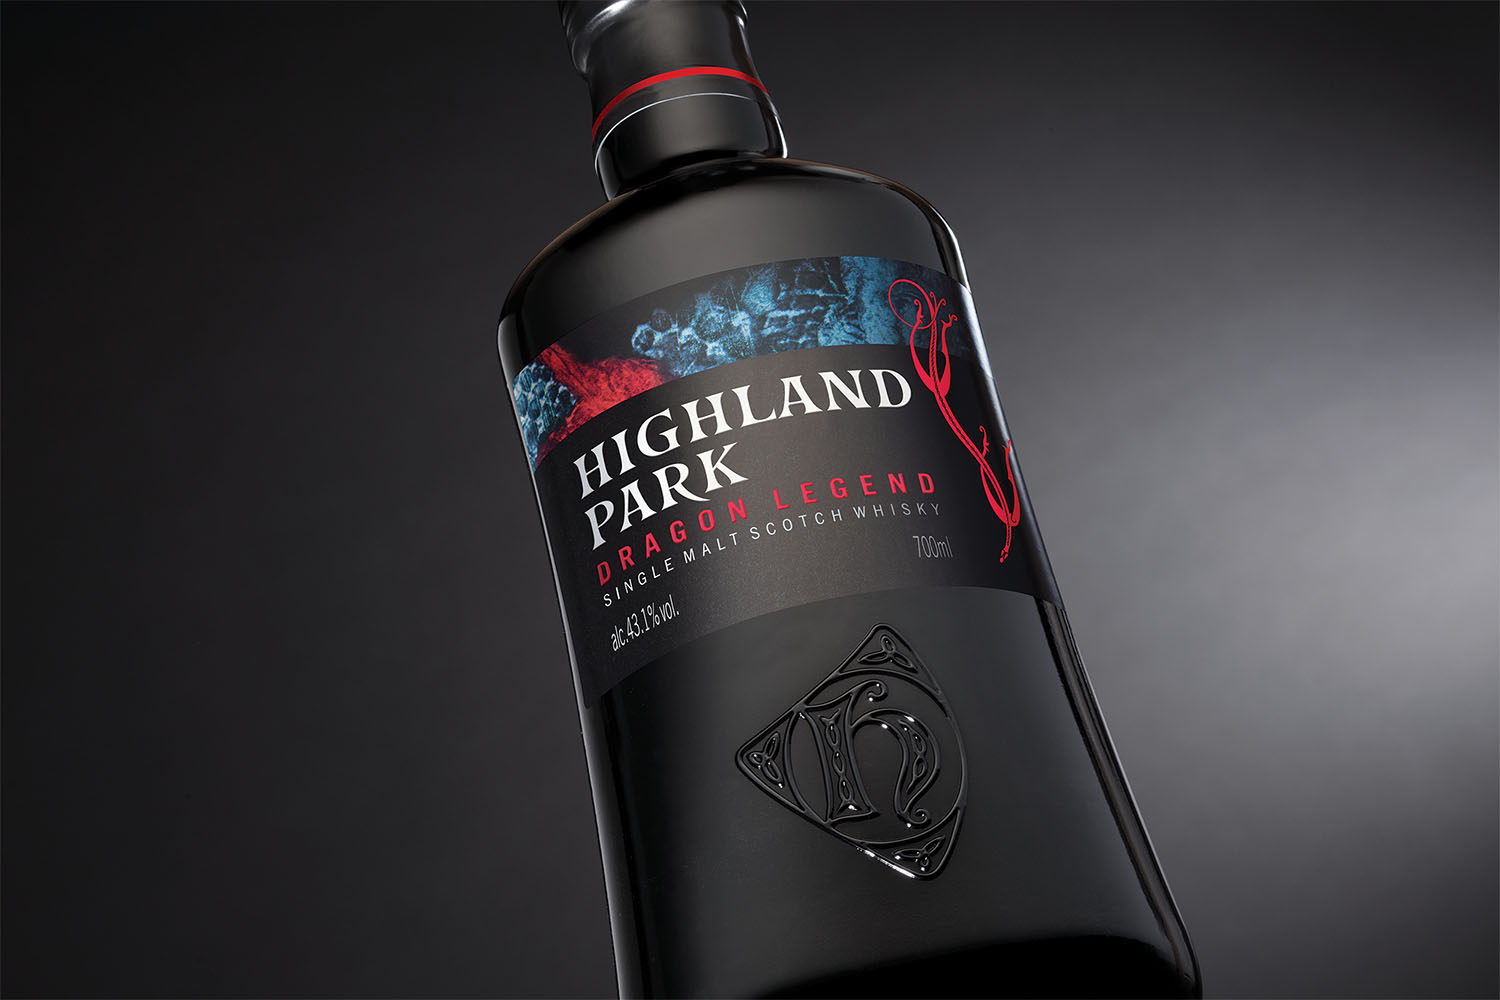 Mountain_Agency_Glasgow_Highland Park_Dragon Legend_001.jpg